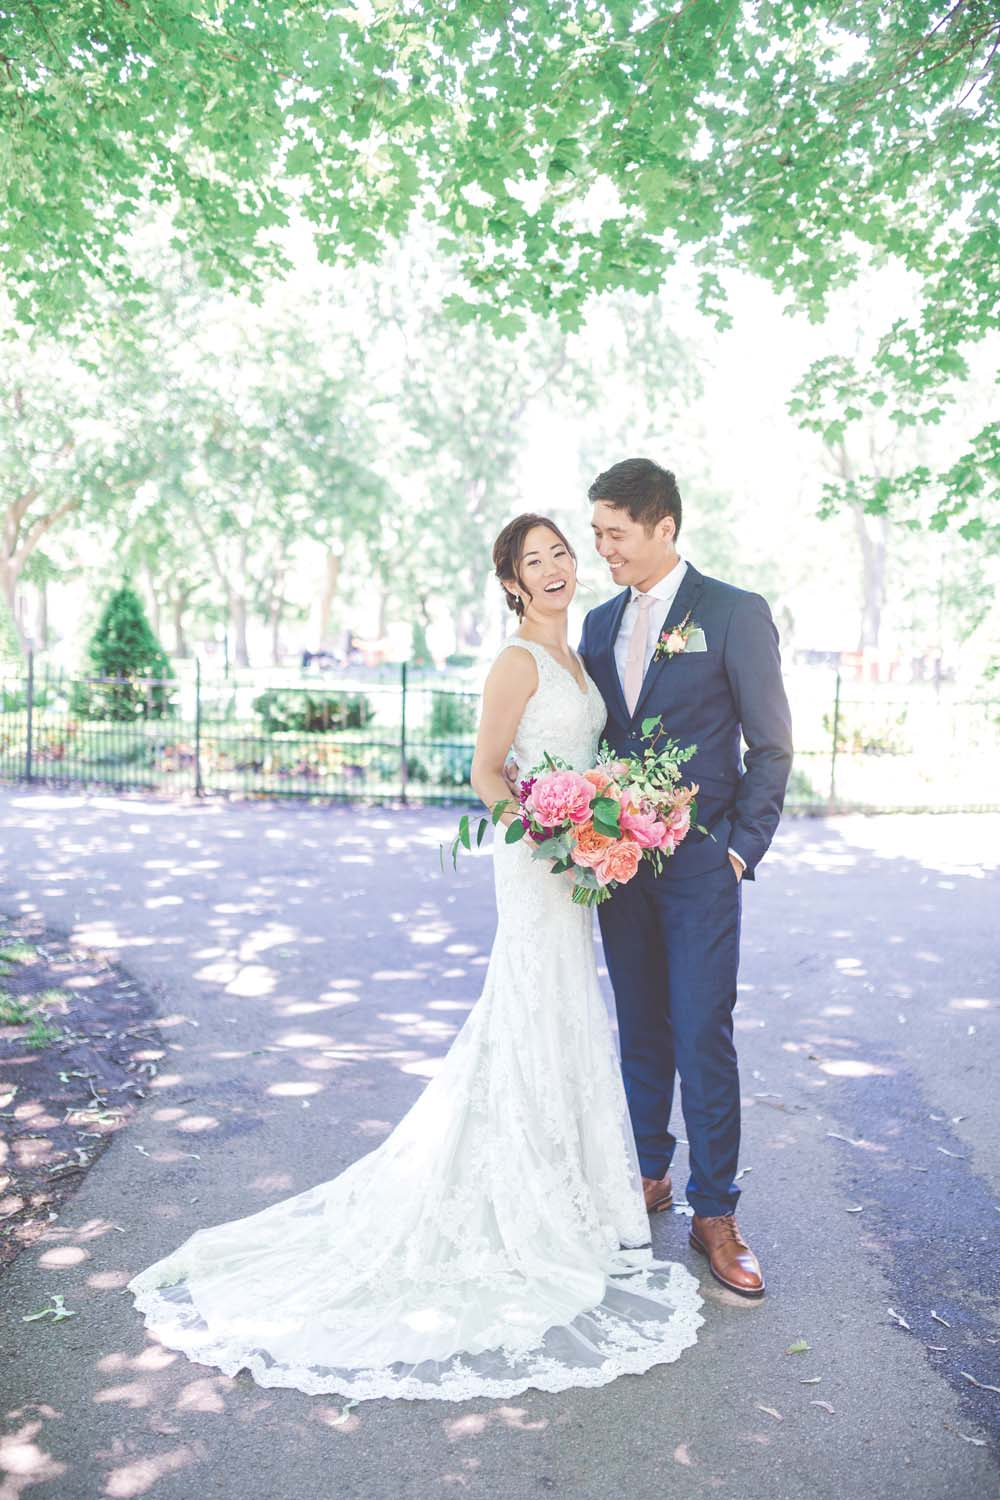 a bright, fresh summer wedding in montreal - bride and groom